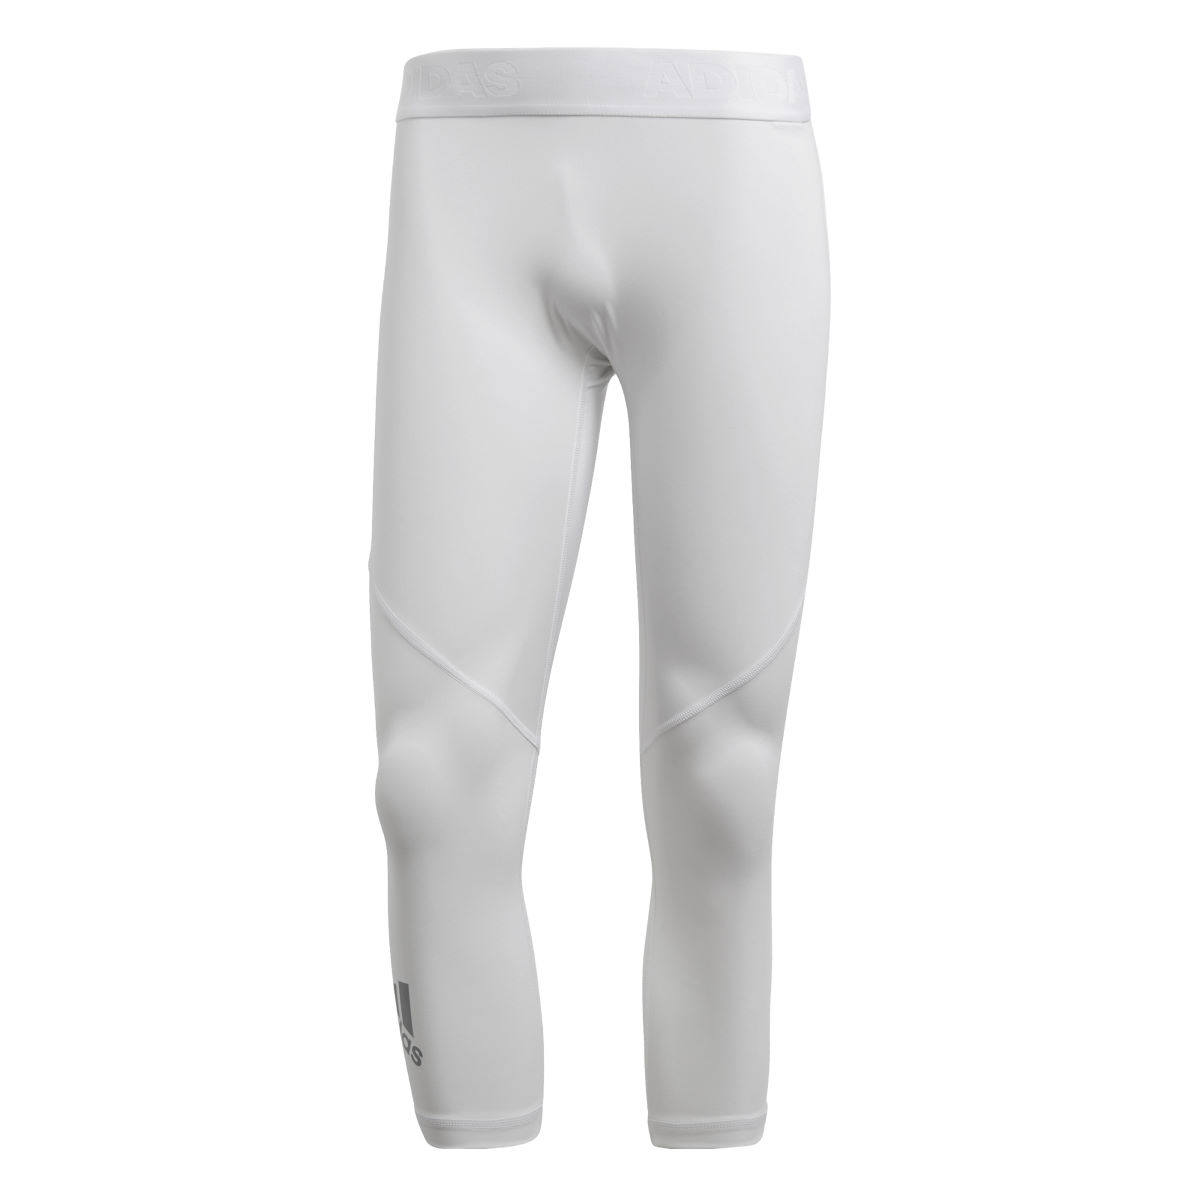 Corsaire adidas Alphaskin Sport - S WHITE Sous-vêtements compression